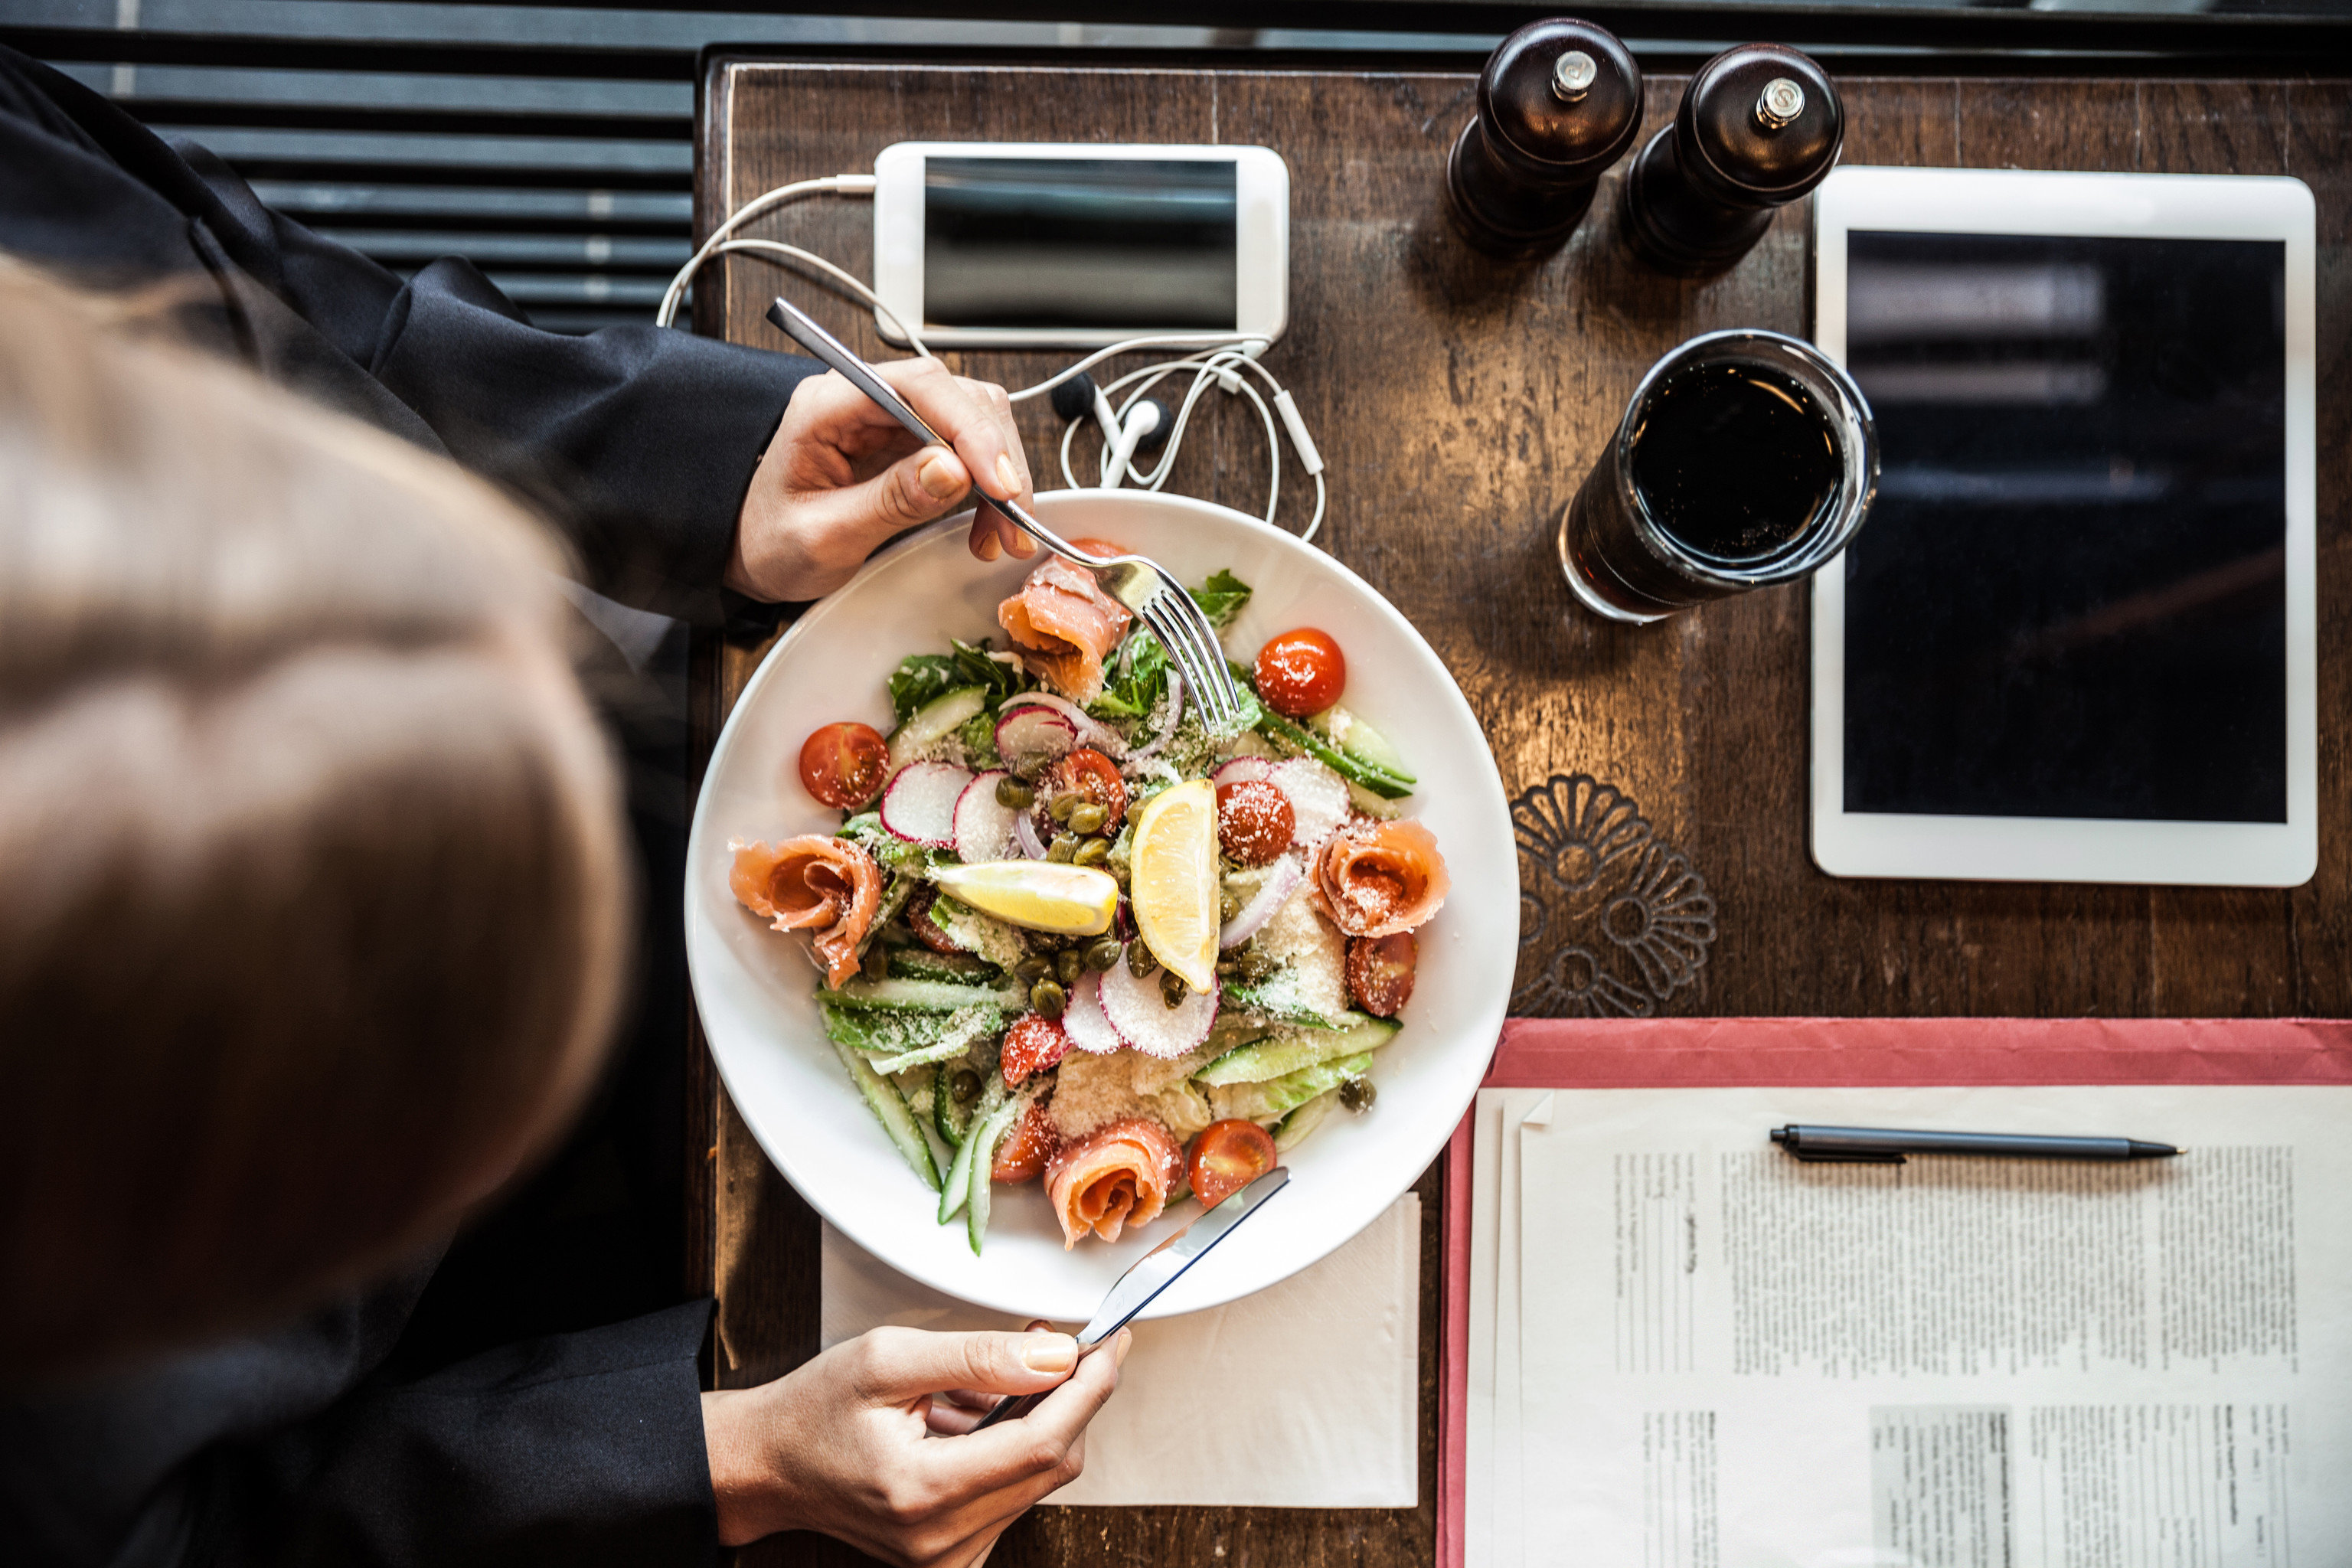 Food + Drink Offbeat Solo Travel person meal food dish lunch dinner sense restaurant brunch